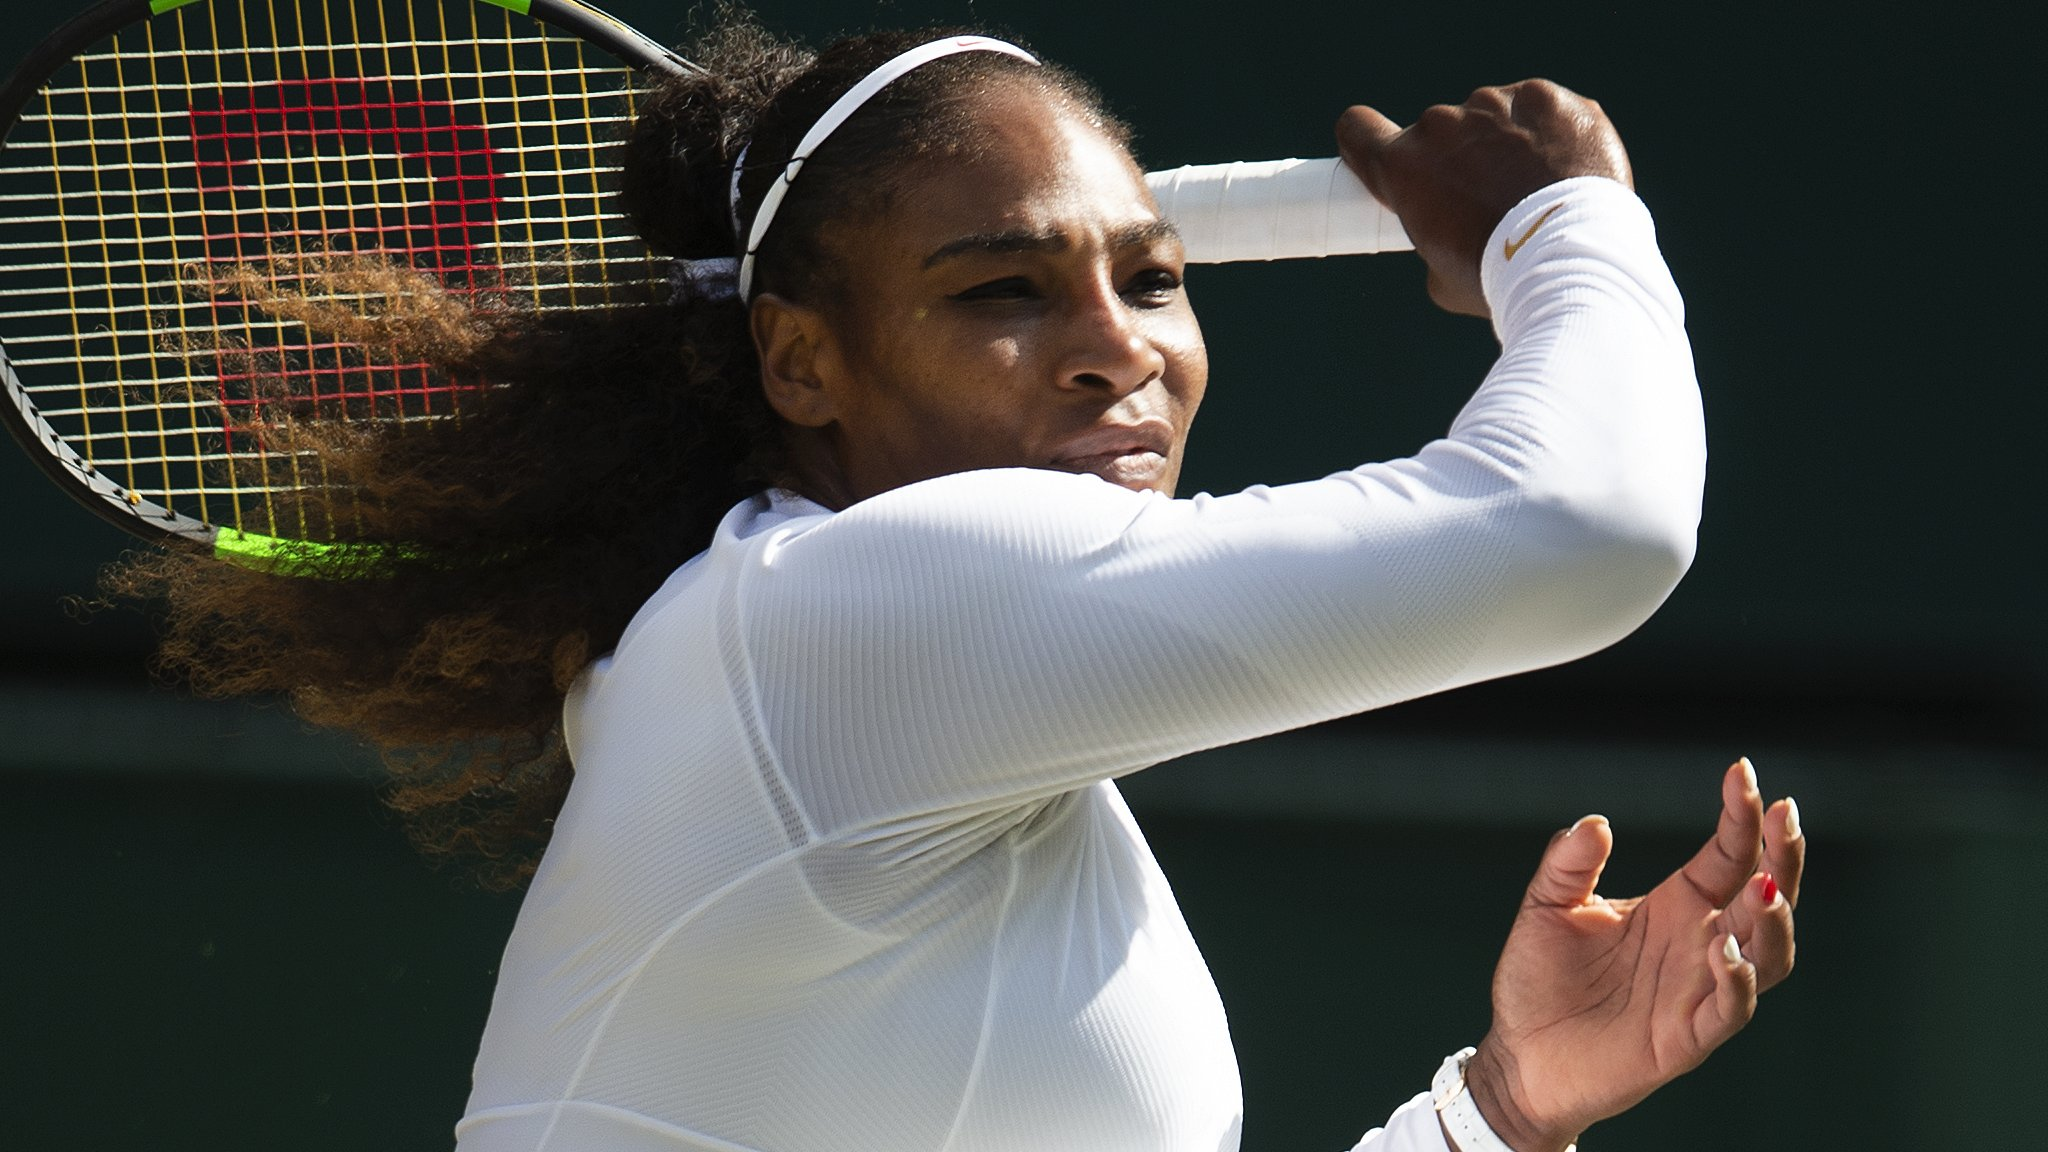 Williams returns to world's top 30 after run to Wimbledon final